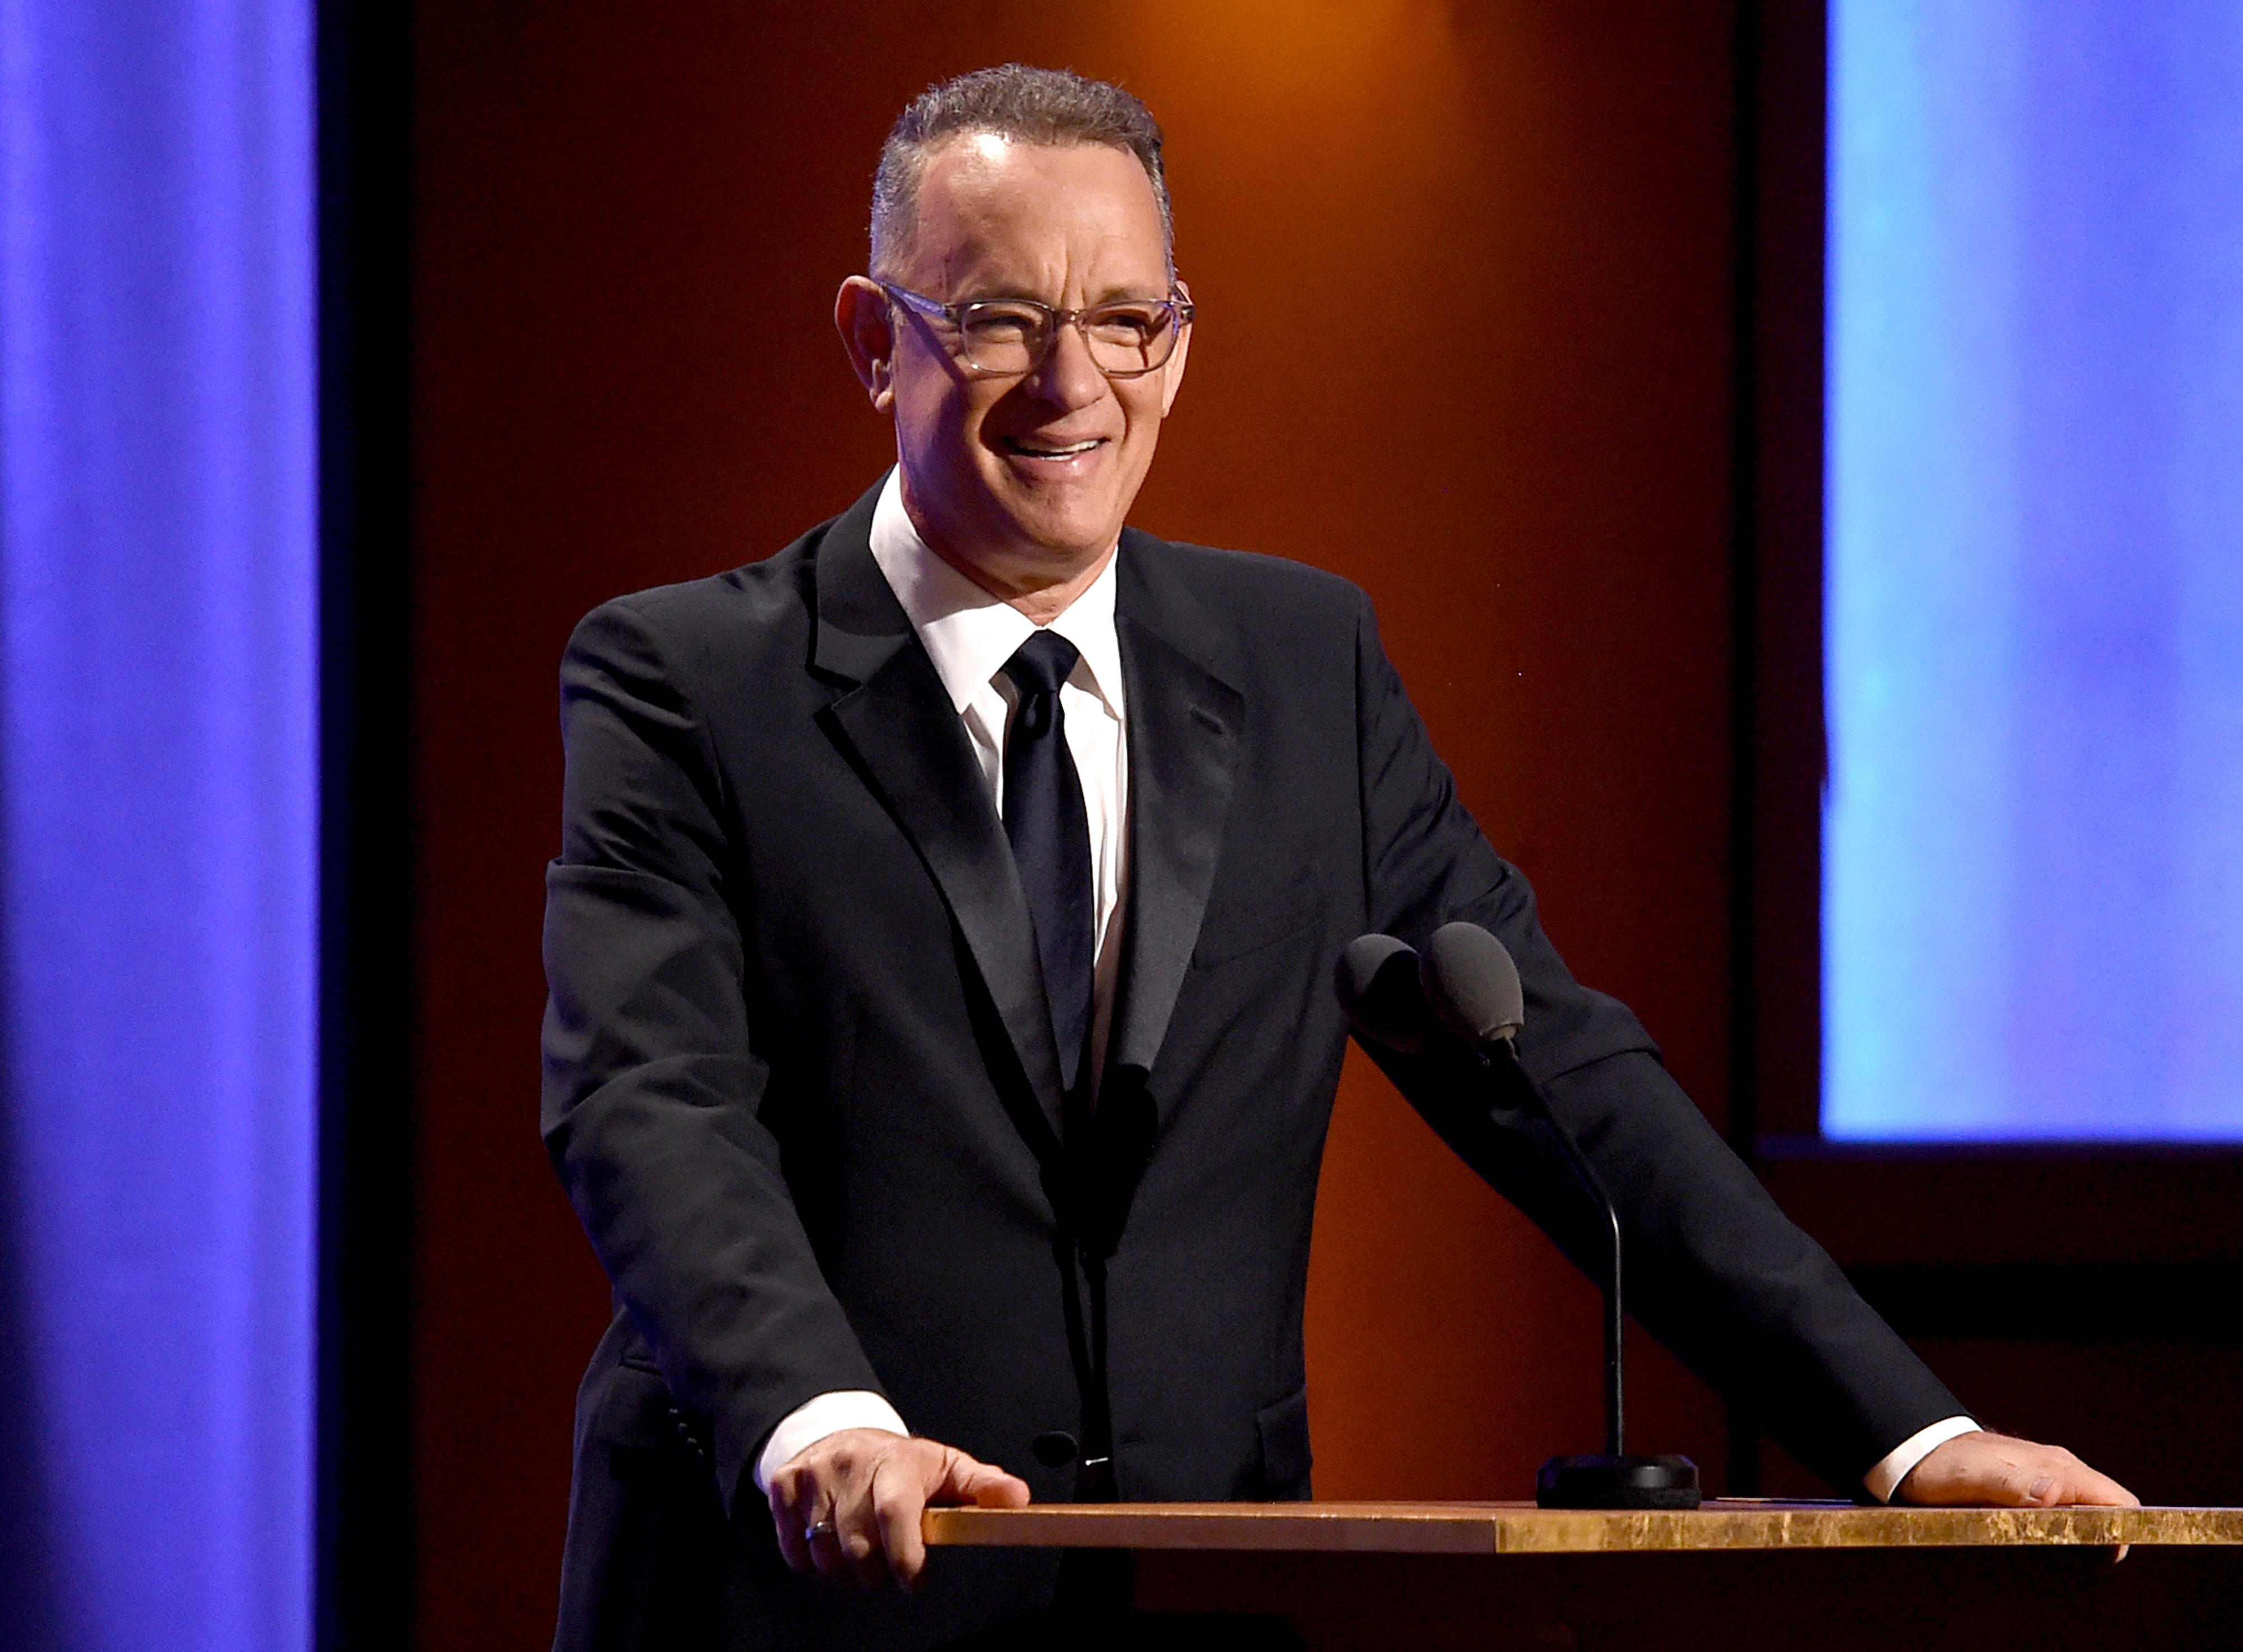 Tom Hanks speaking onstage during the Academy of Motion Picture Arts and Sciences' 10th annual Governors Awards at The Ray Dolby Ballroom at Hollywood & Highland Center in Hollywood, California | Photo: Kevin Winter/Getty Images